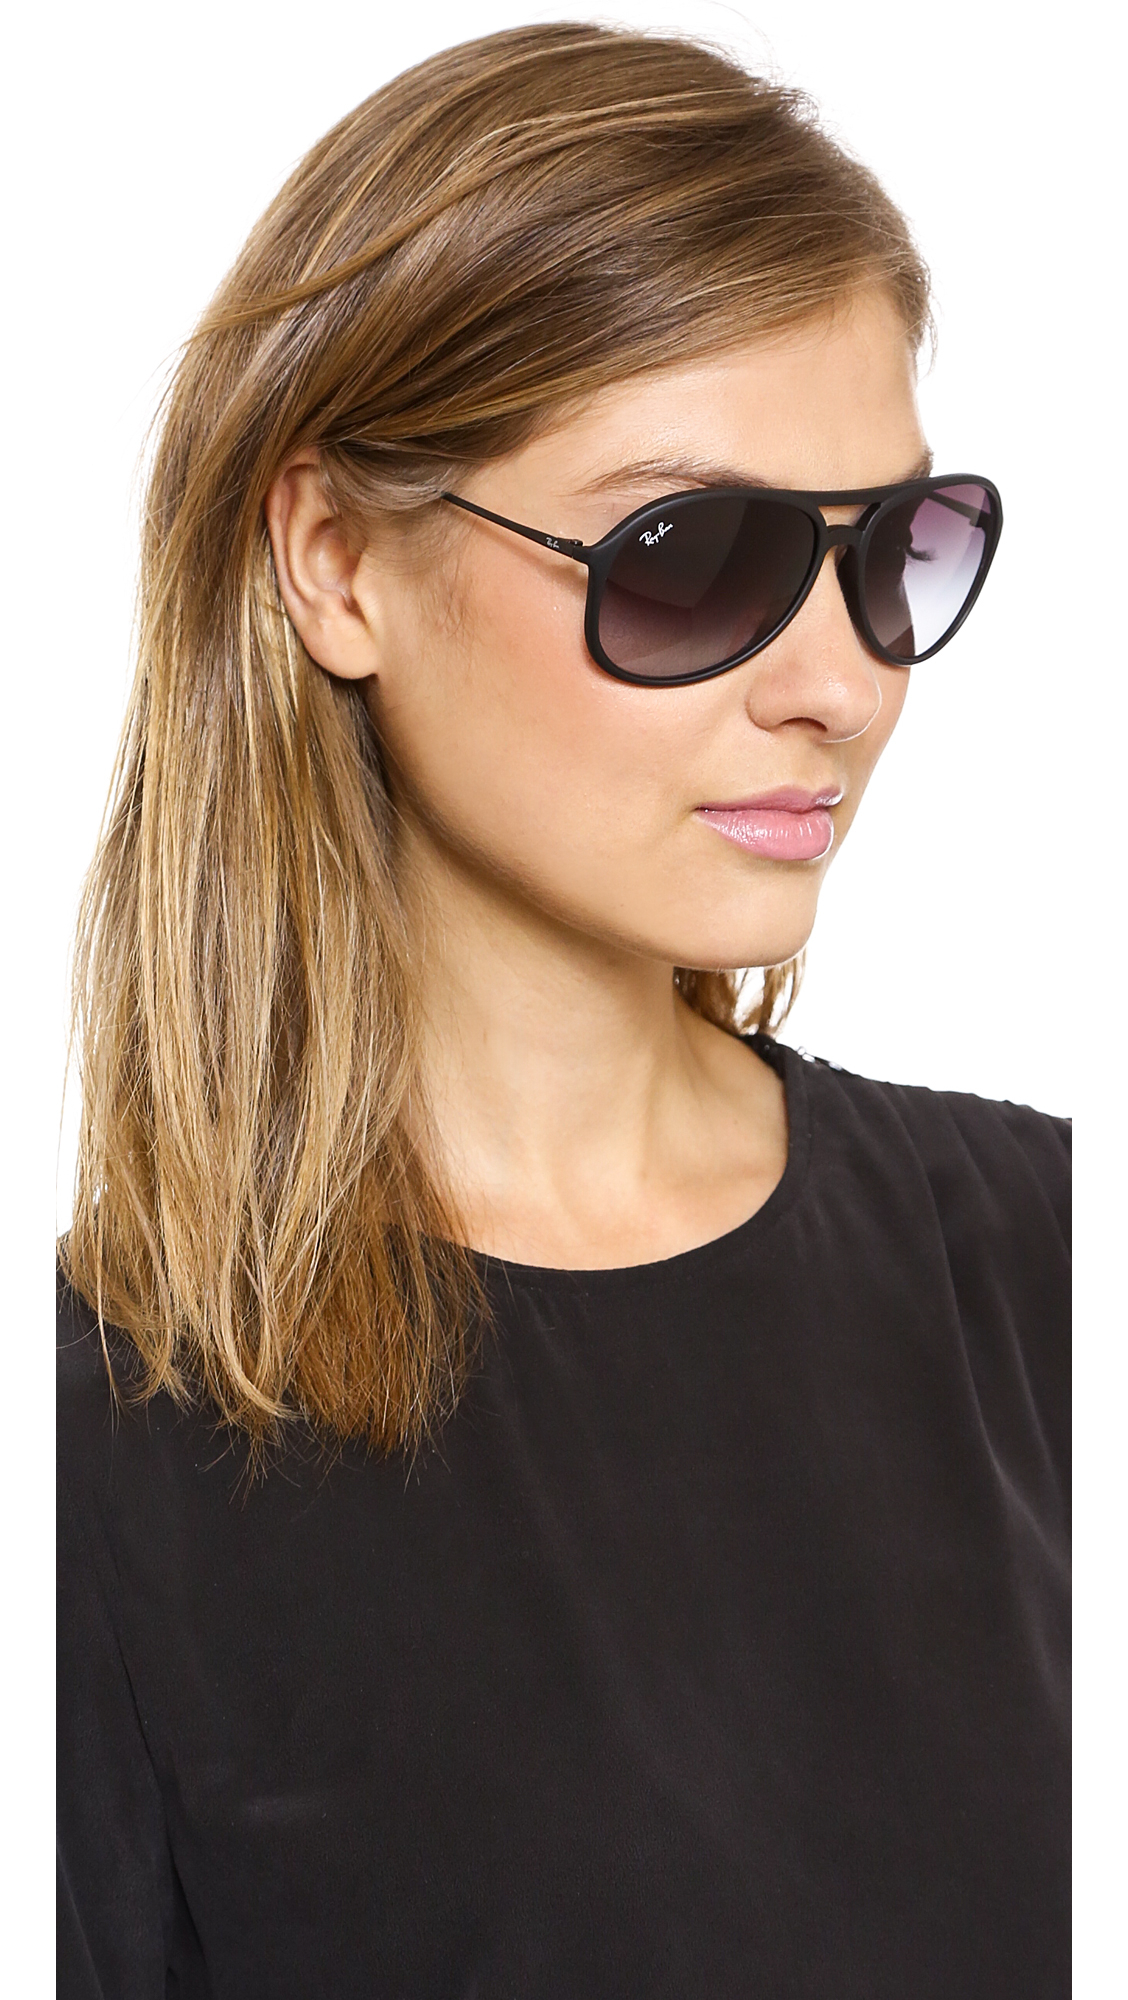 b088d31bf9e Buy Ray-Ban Women s Black Youngster Rubber Aviator Sunglasses